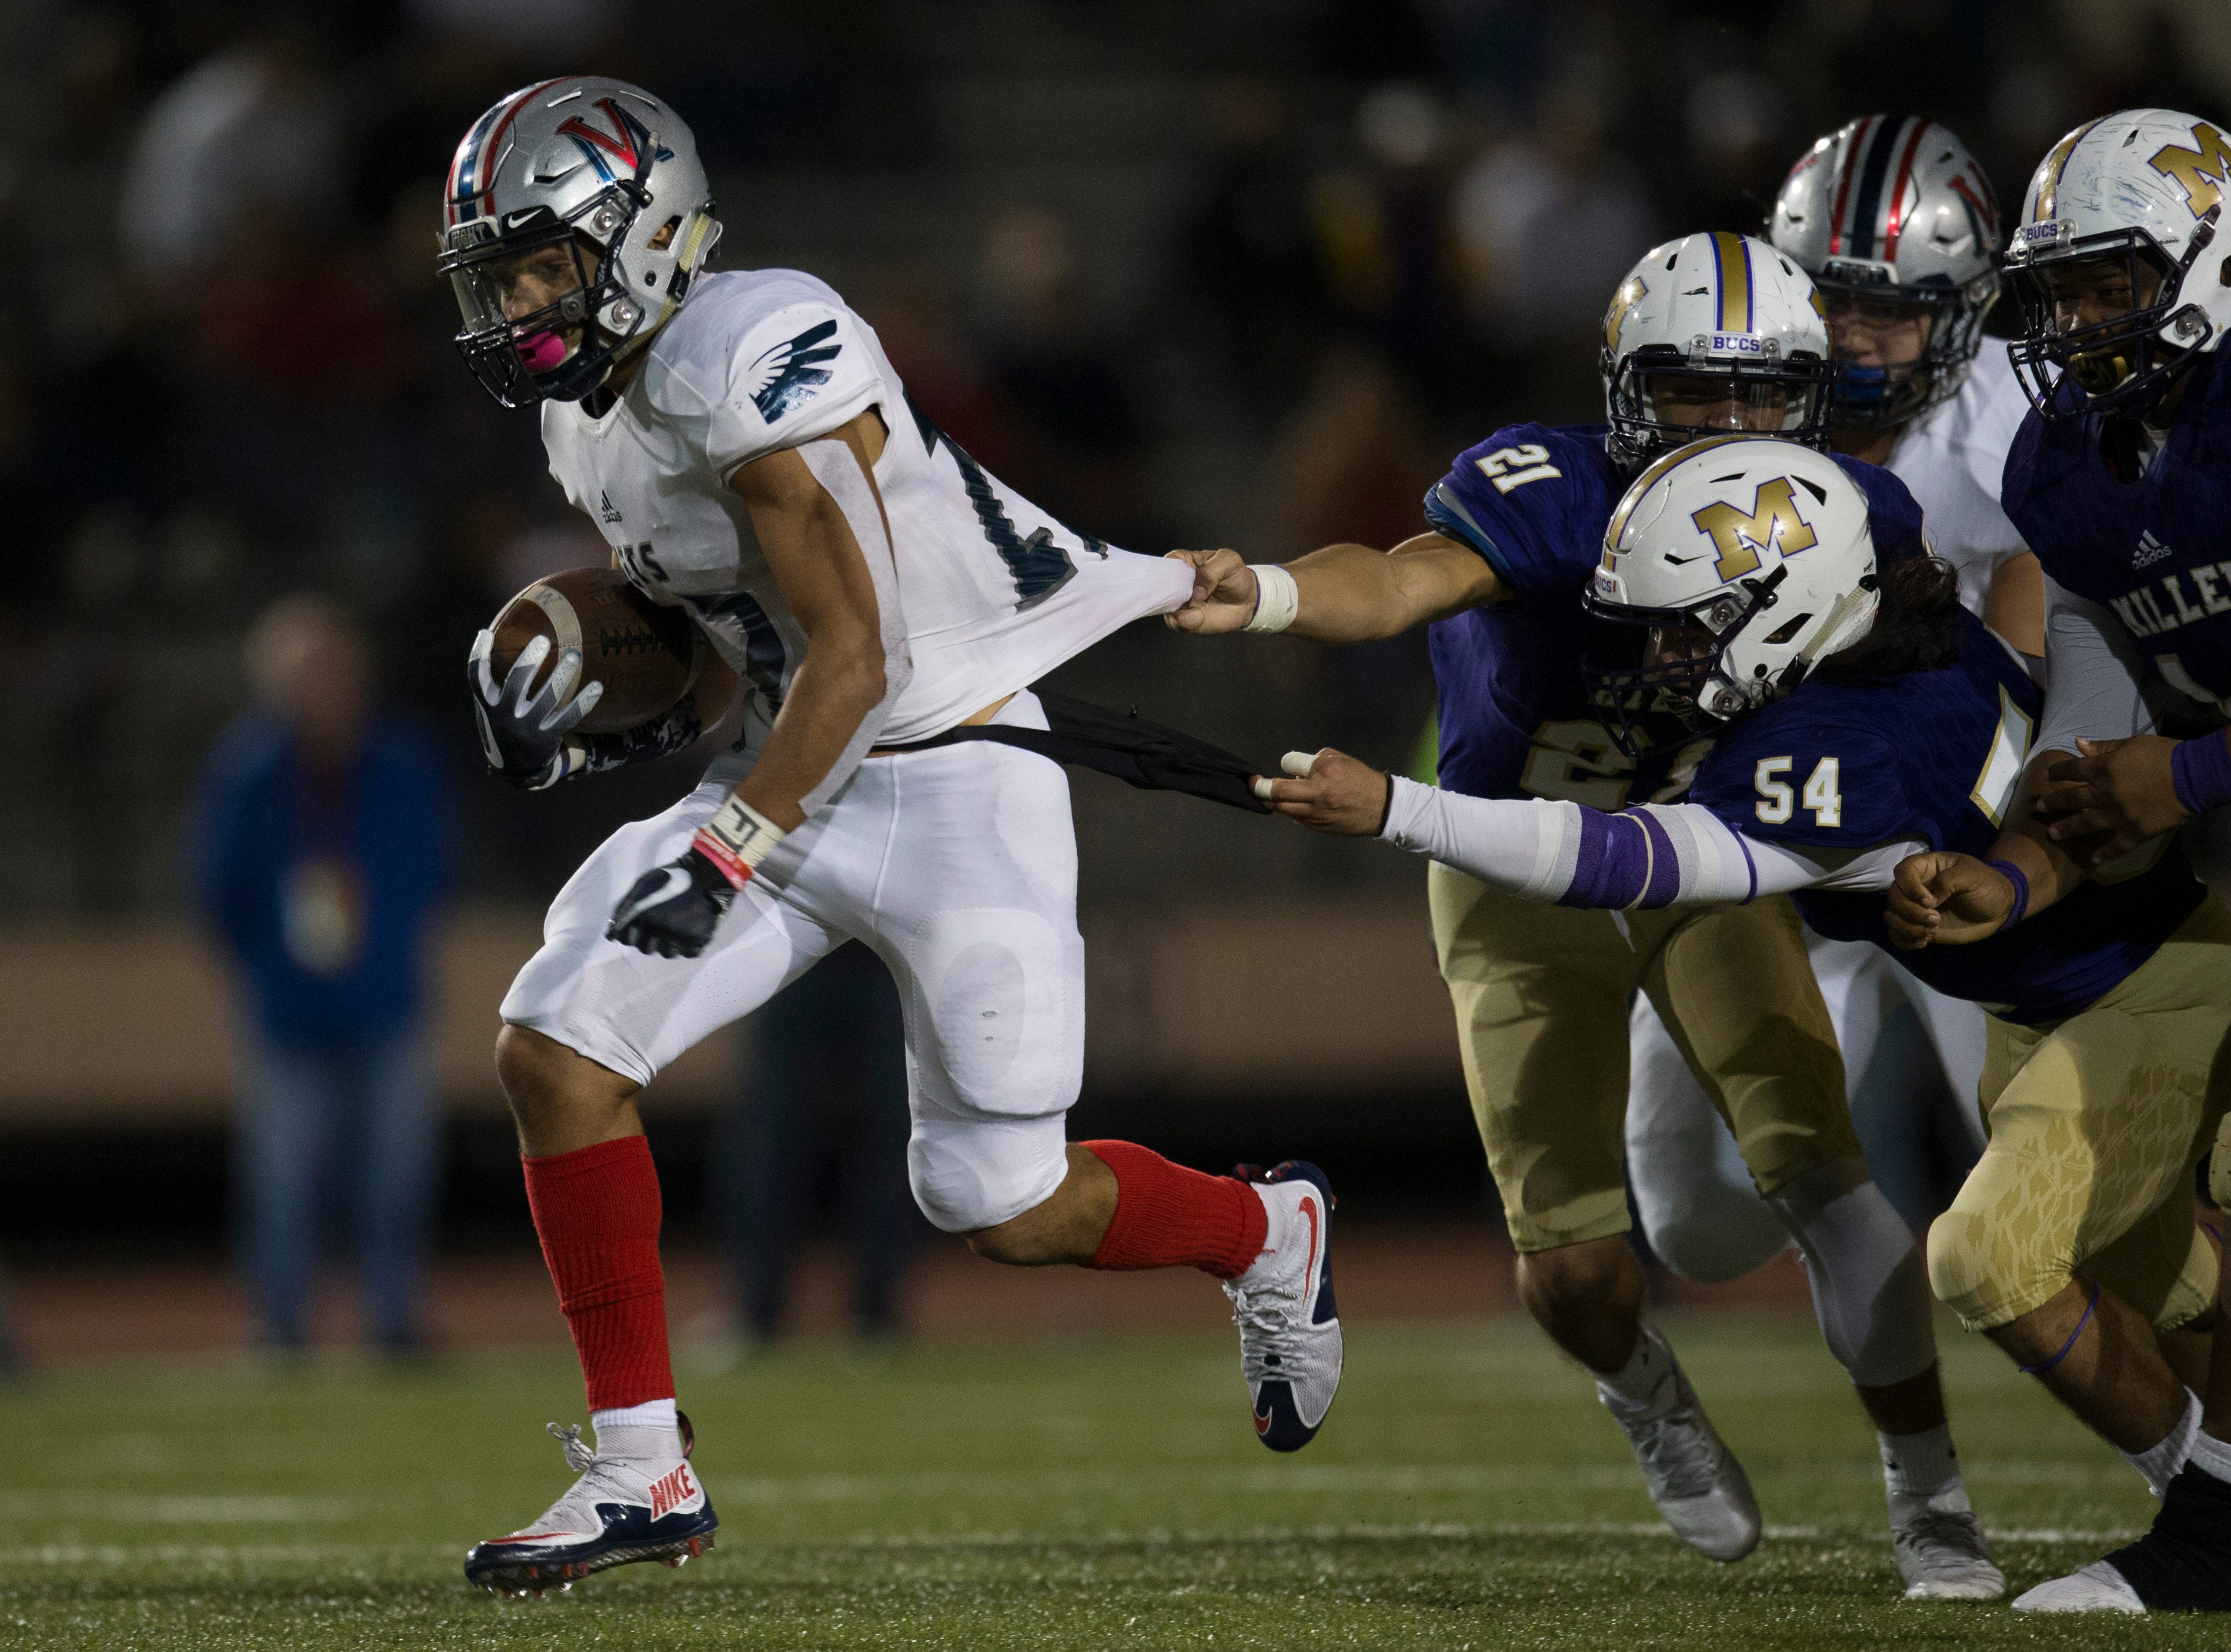 Veterans Memorial's Sethe Solis rushes past Miller defenders  during their game on Thursday, Oct. 25, 2018 at the Buccaneer Stadium.